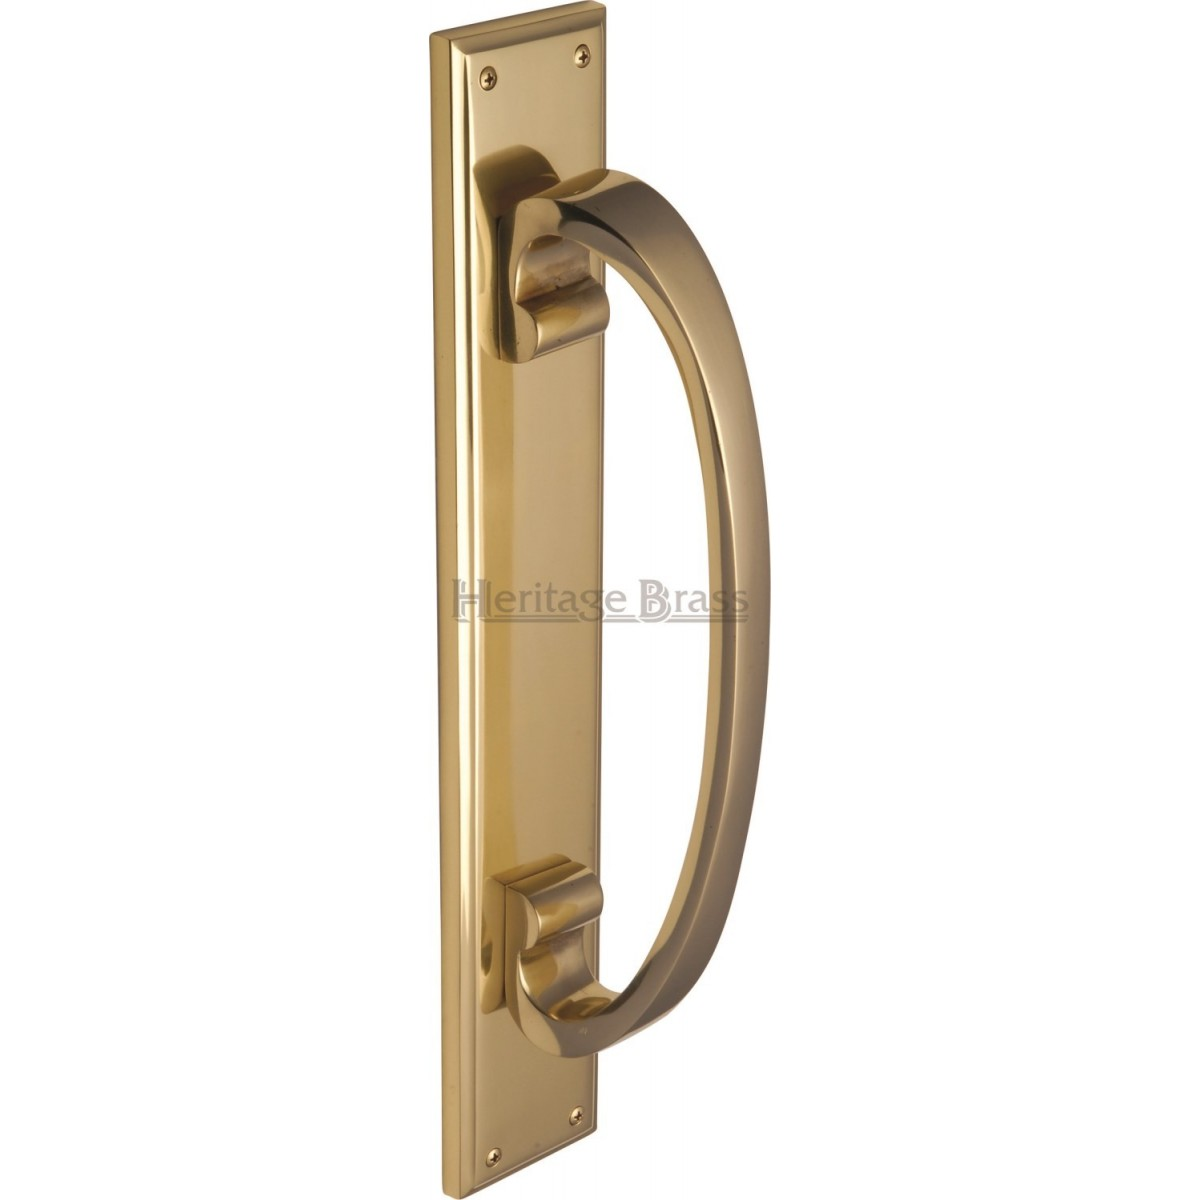 pull door handles. HERITAGE BRASS PULL HANDLE ON PLATE - LARGE V1162 Pull Door Handles